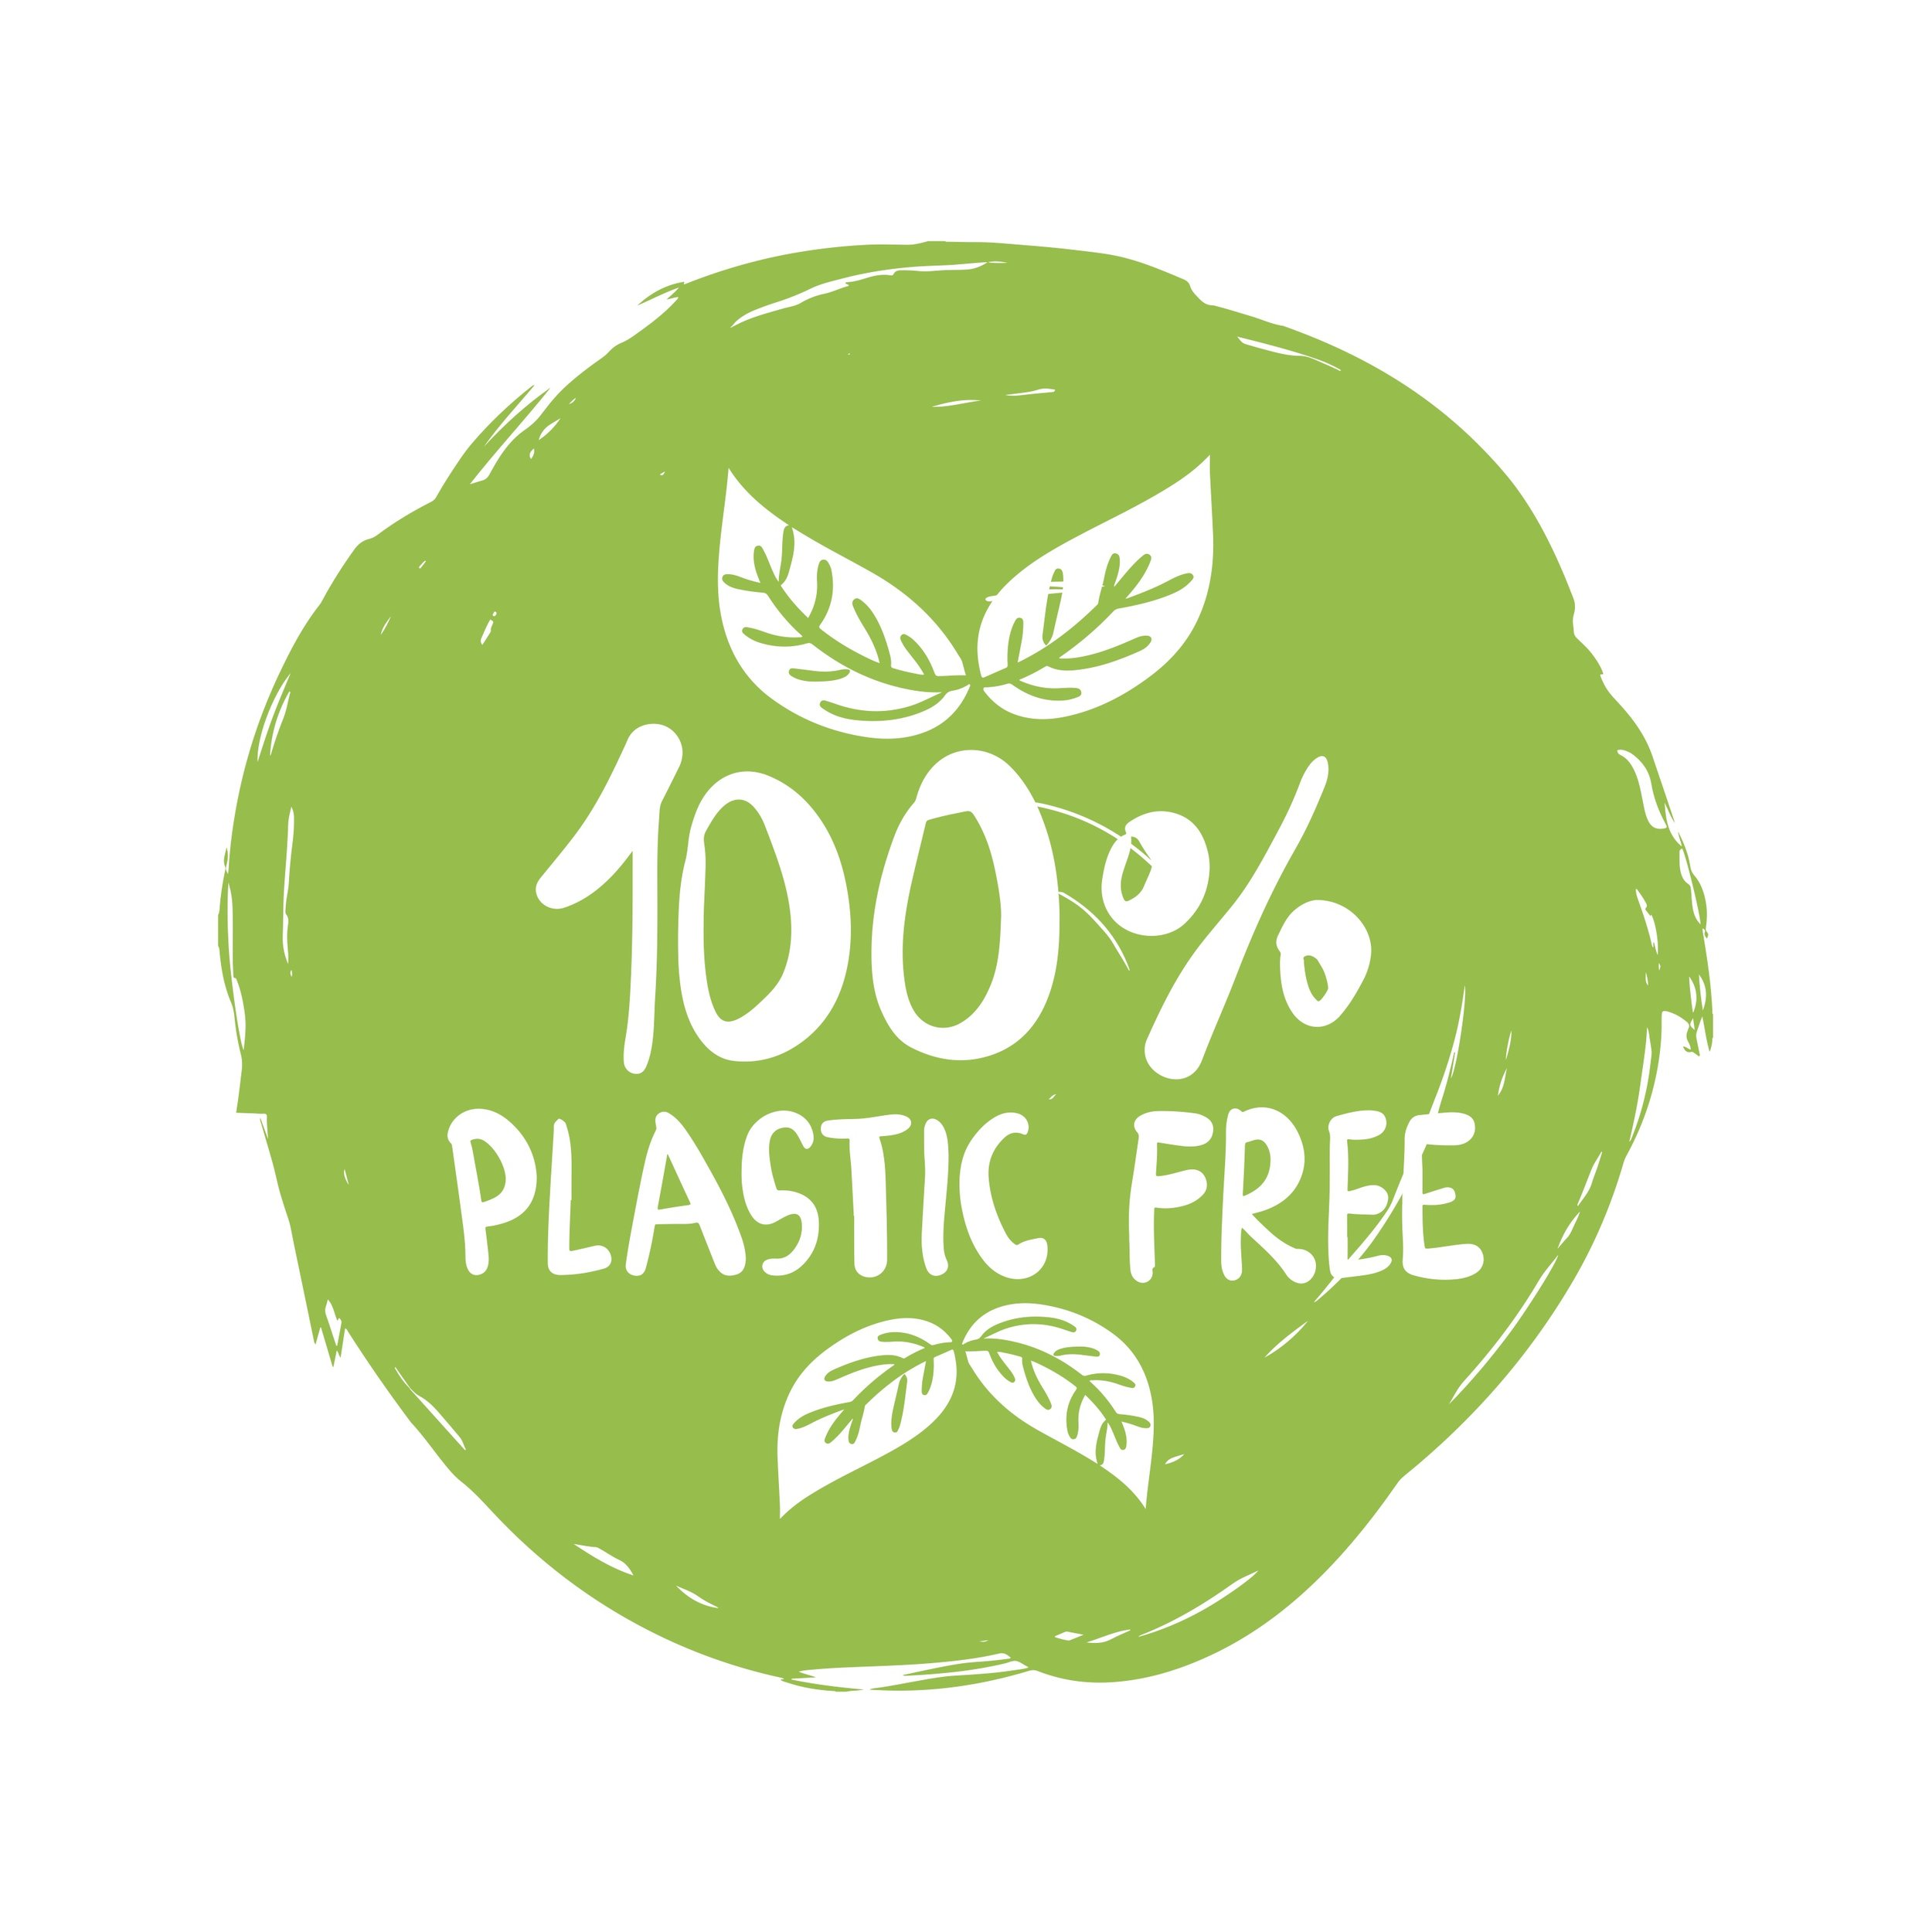 Our products are 100% plastic free! Chat to us today to find out more about our environmentally friendly cups & straws. -